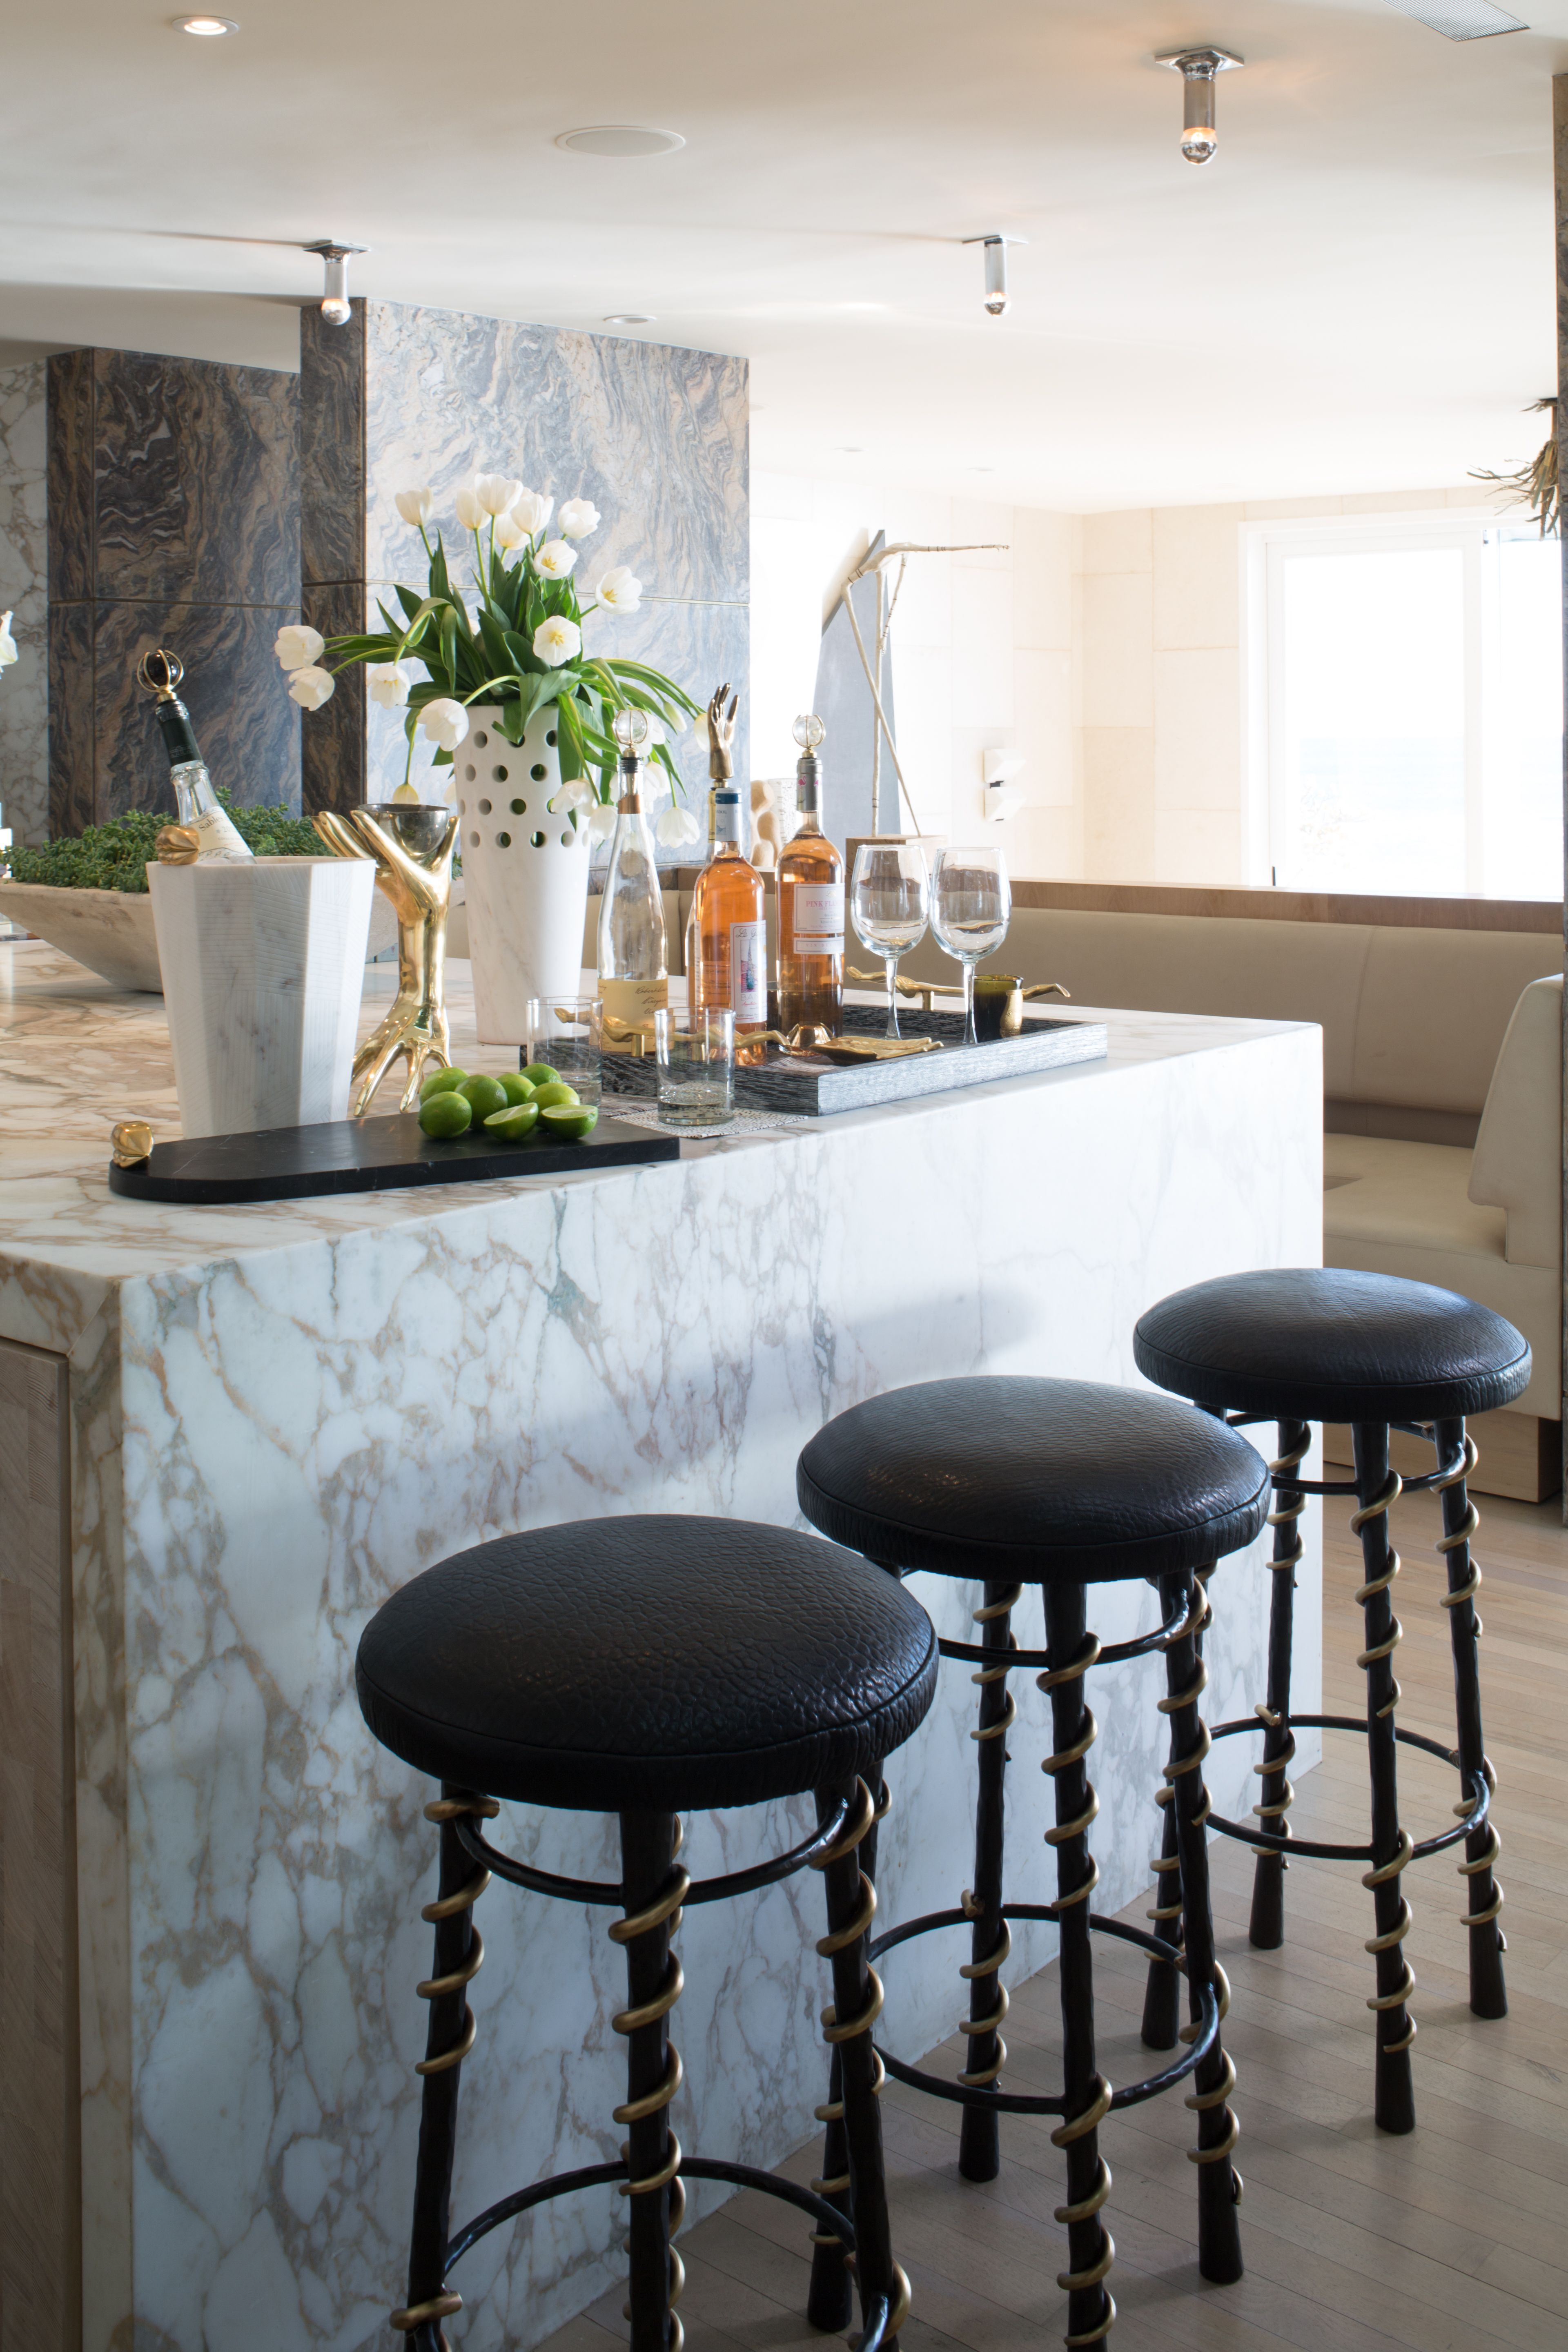 KELLY WEARSTLER   SERPENT BAR STOOL. Hand-wrought blackened steel legs with bronze serpent-inspired detailing and supple black textured leather upholstery